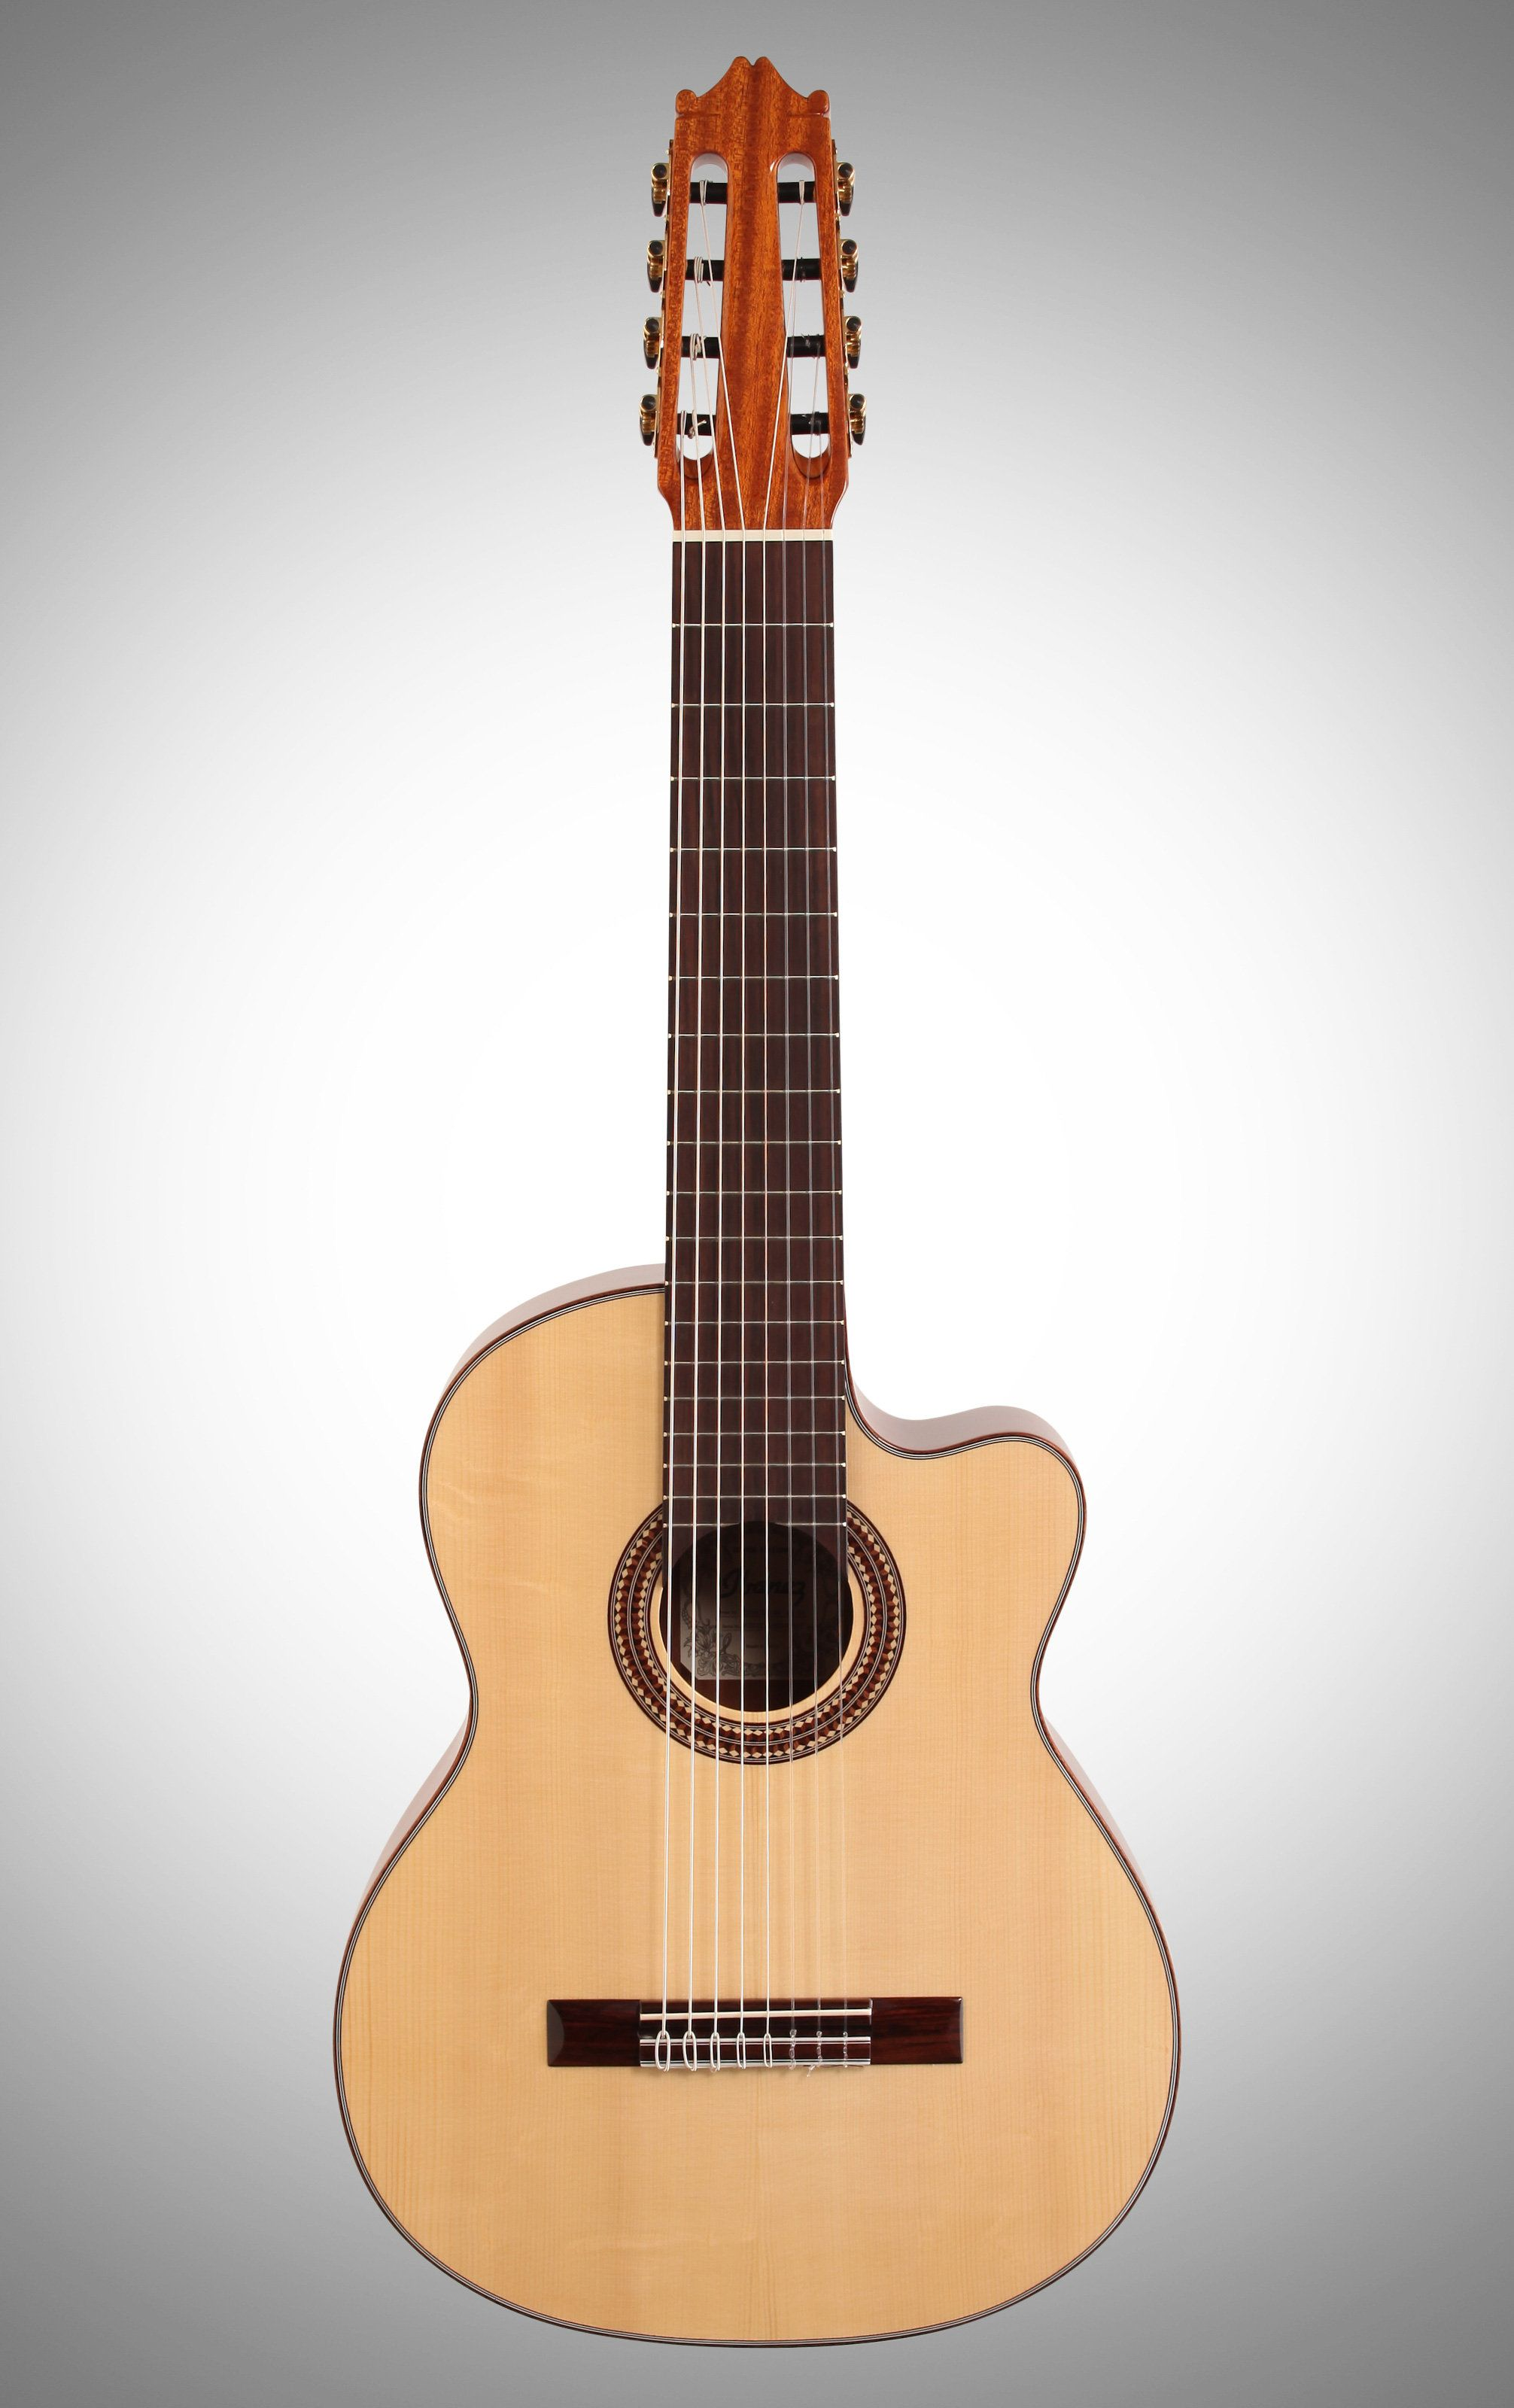 Ibanez G208c Classical Guitar 8 String With Case Zzounds 10